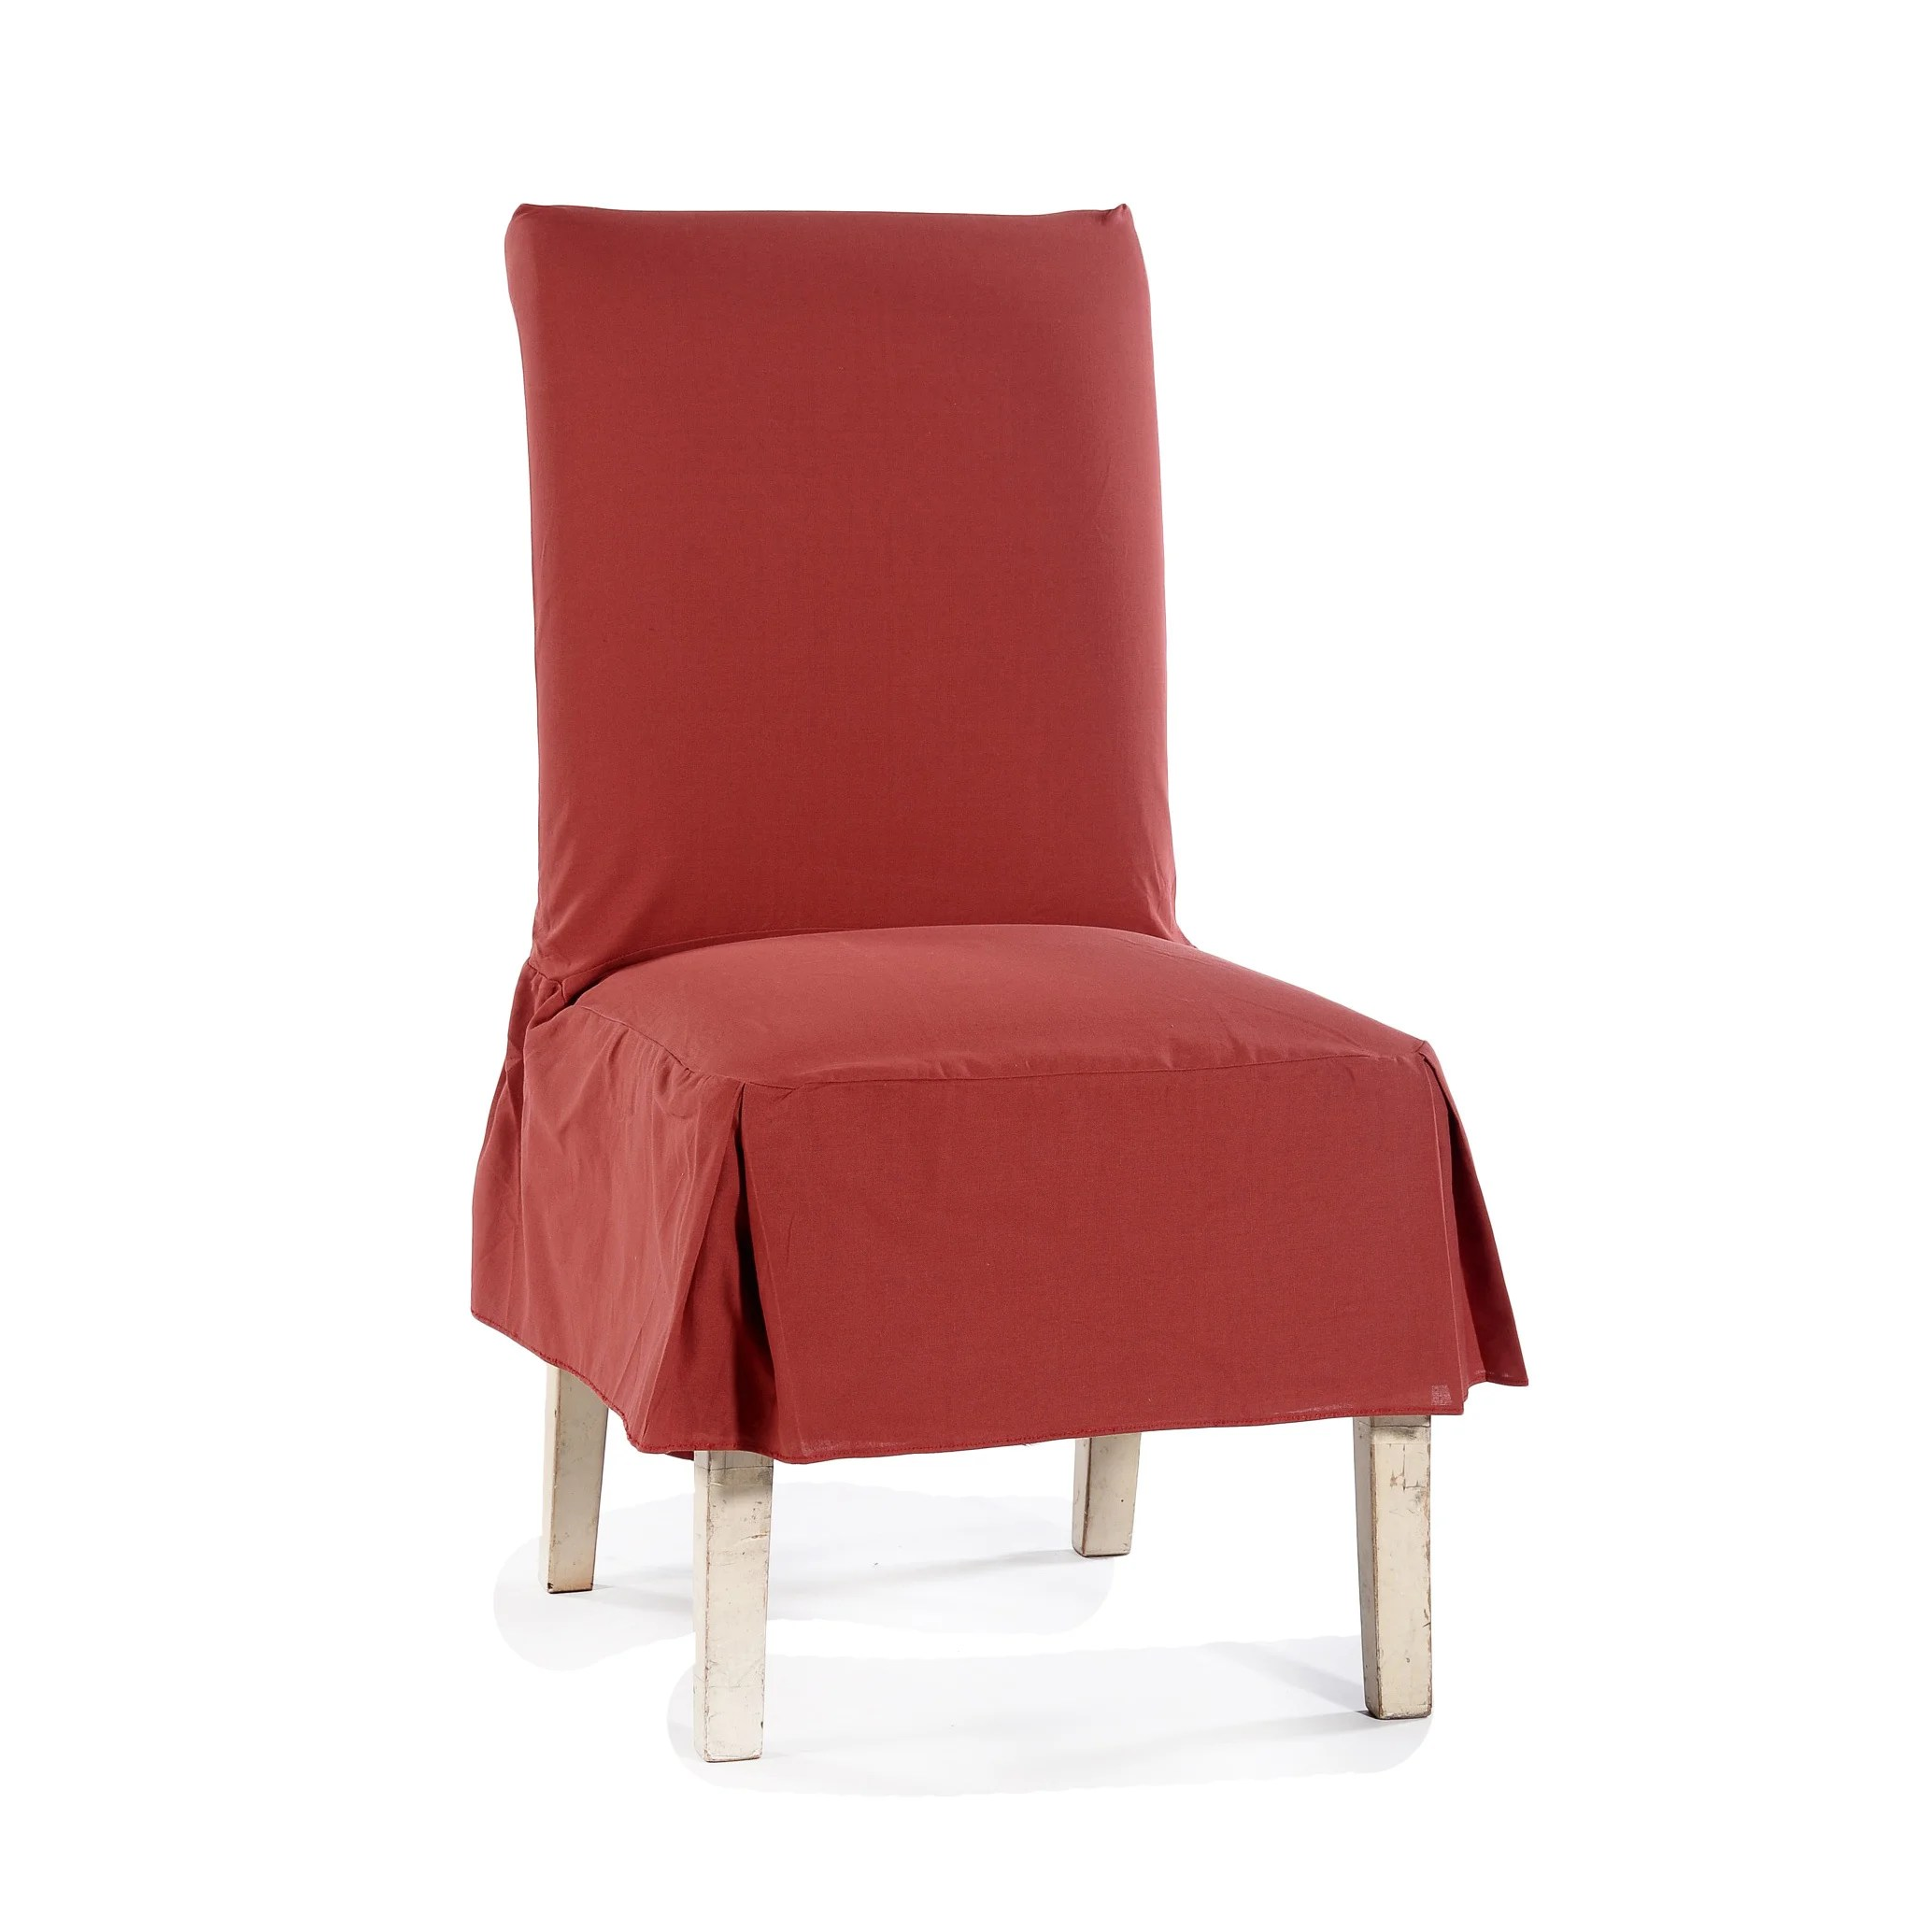 off white dining chair covers folding lounge canada classic cotton duck slipcovers set of 2 ebay